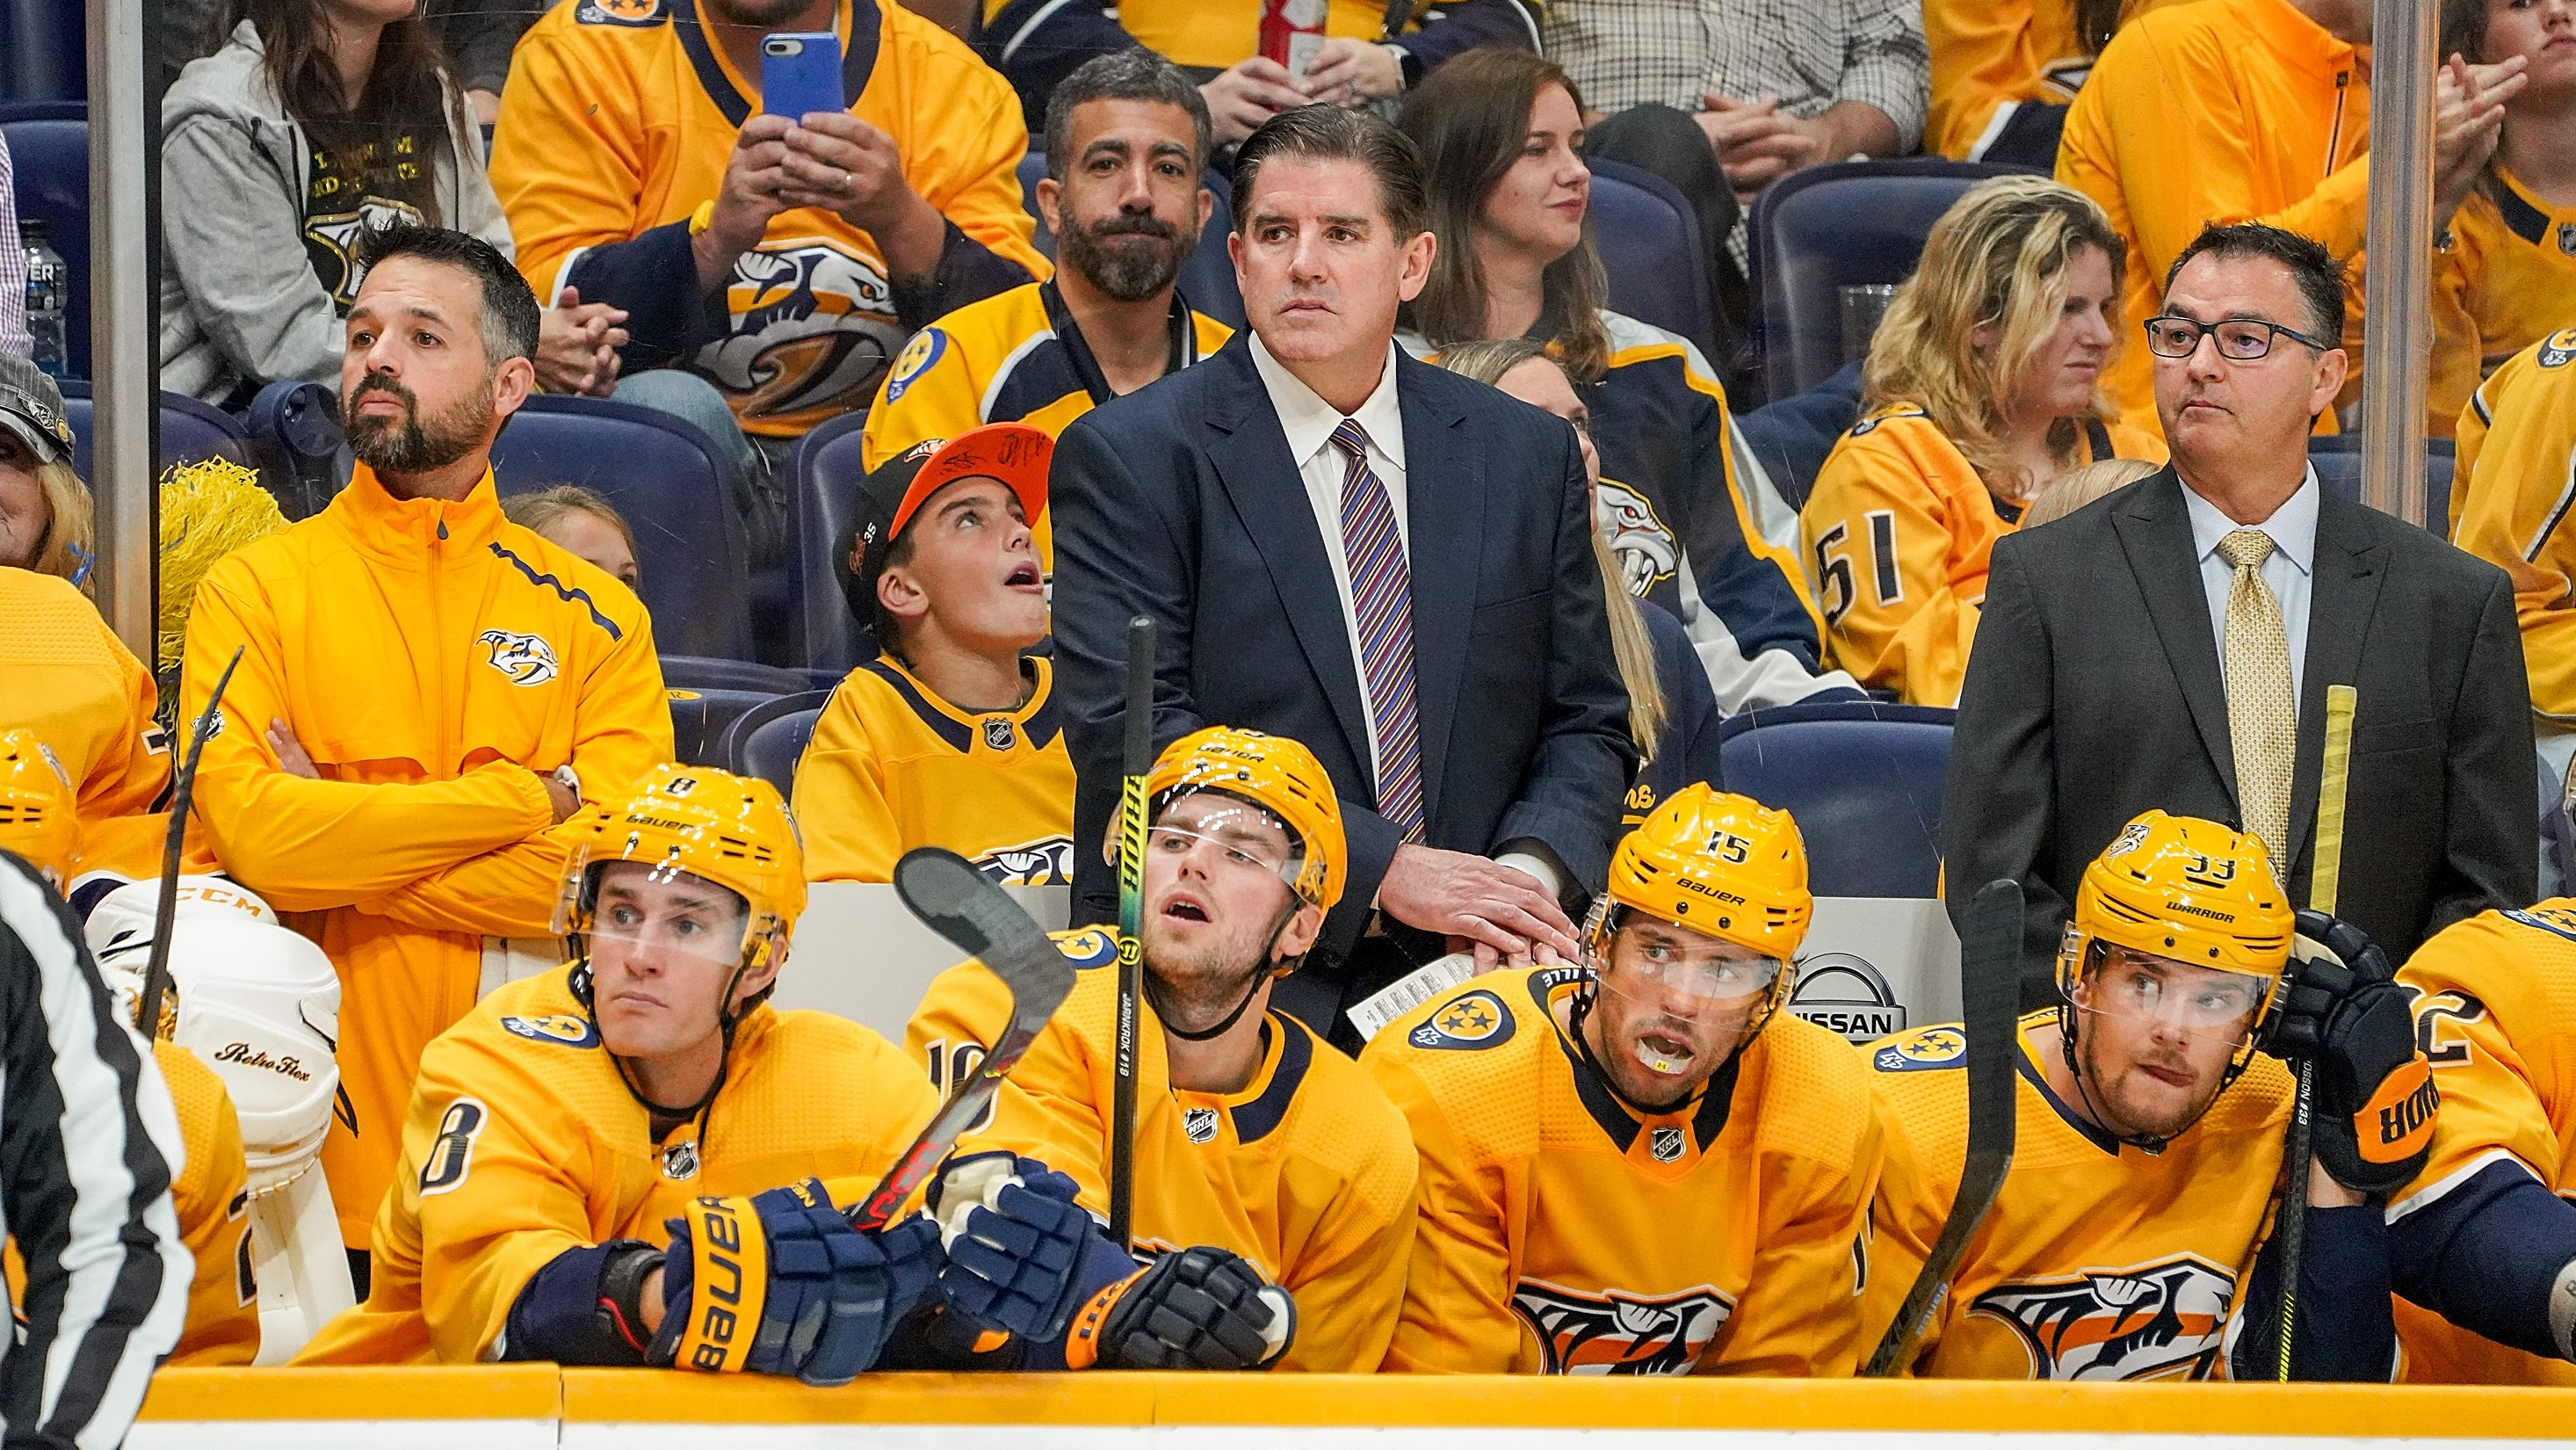 Laviolette wants another chance to coach in NHL